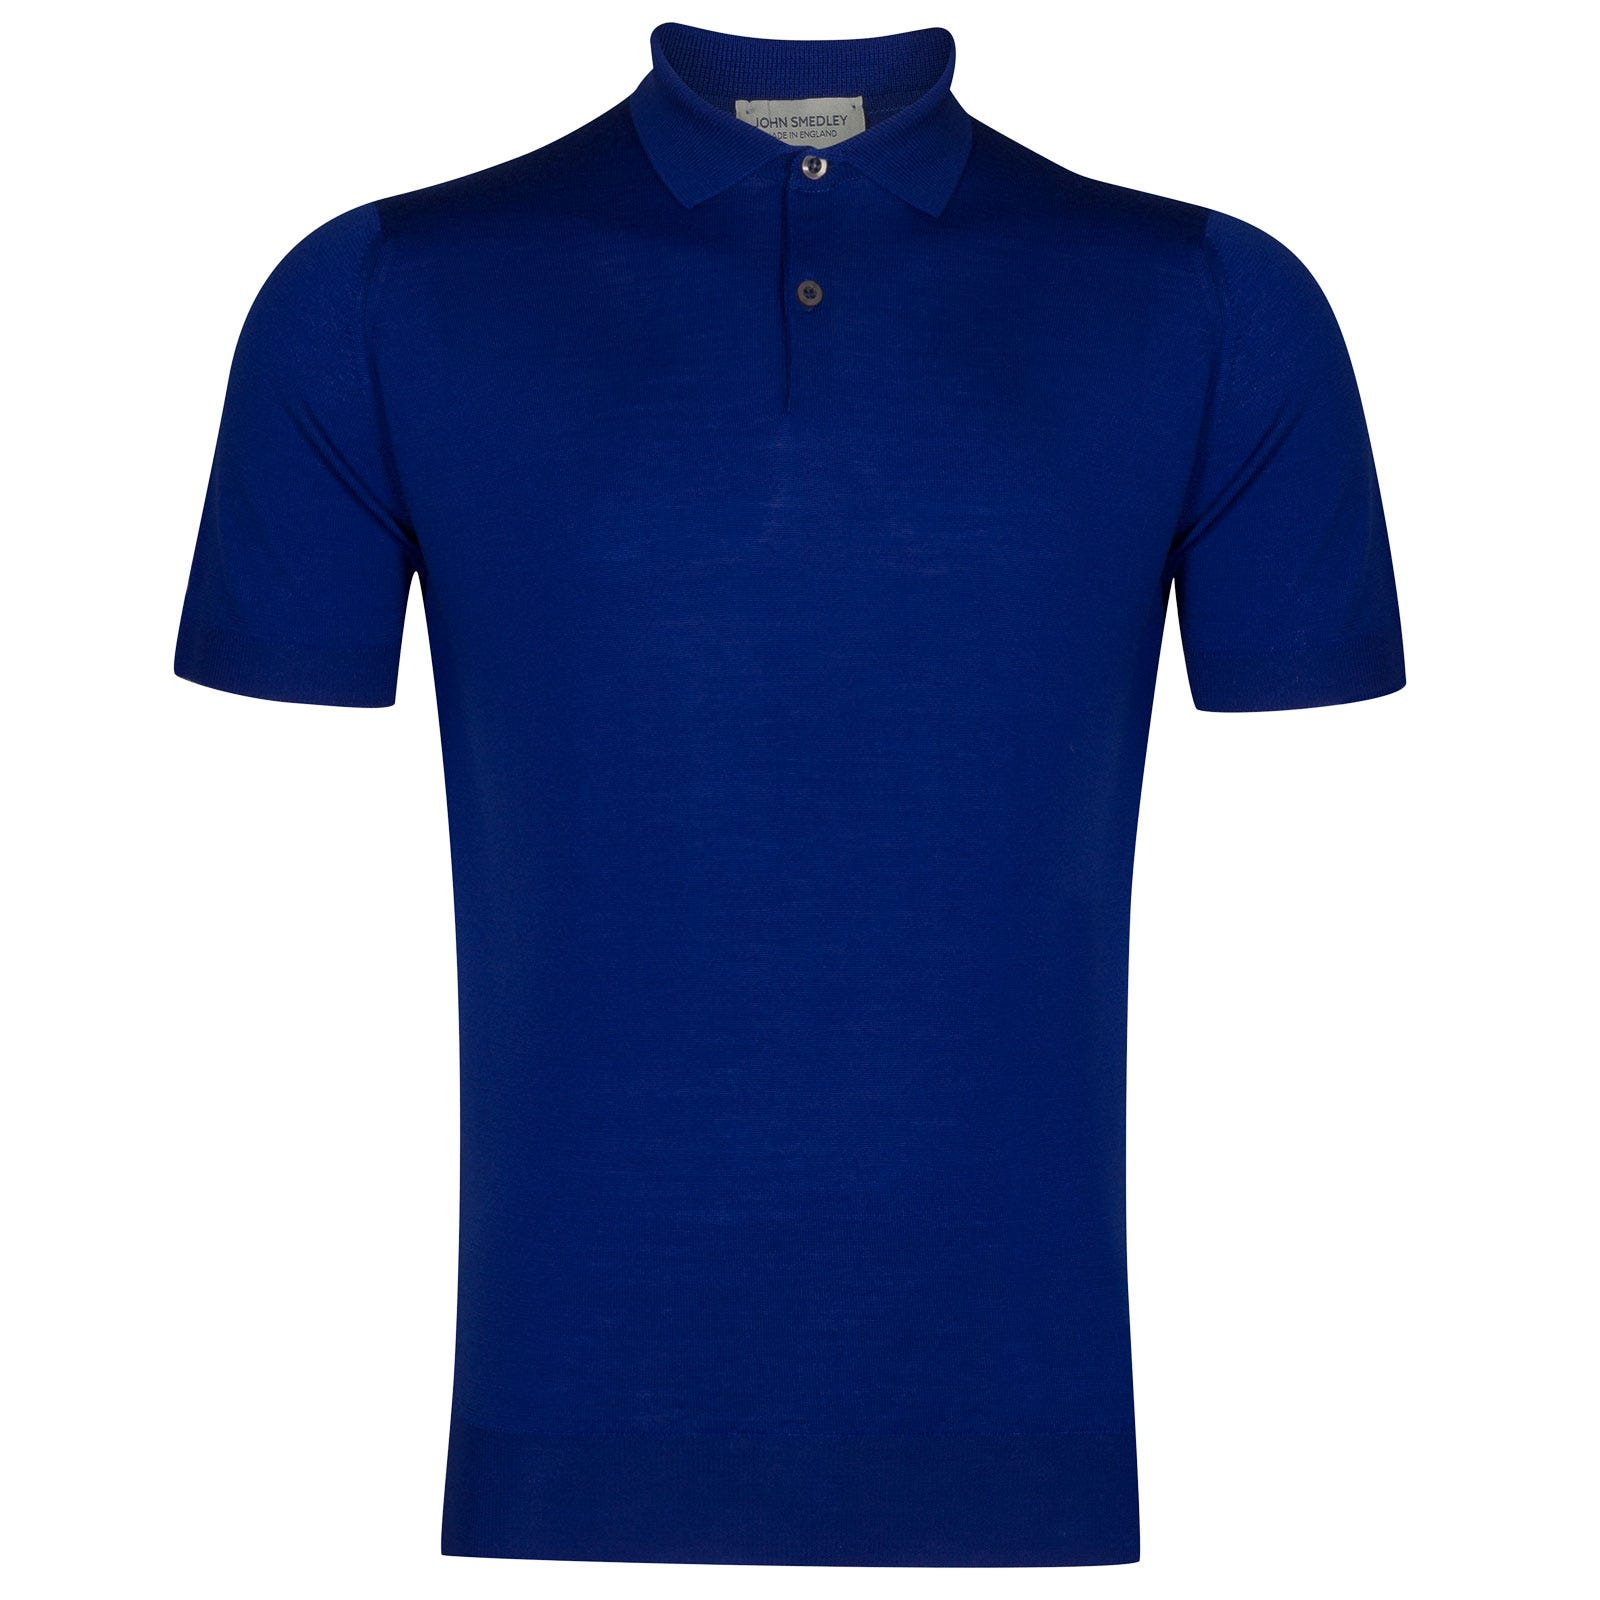 John Smedley payton Merino Wool Shirt in Coniston Blue-XXL